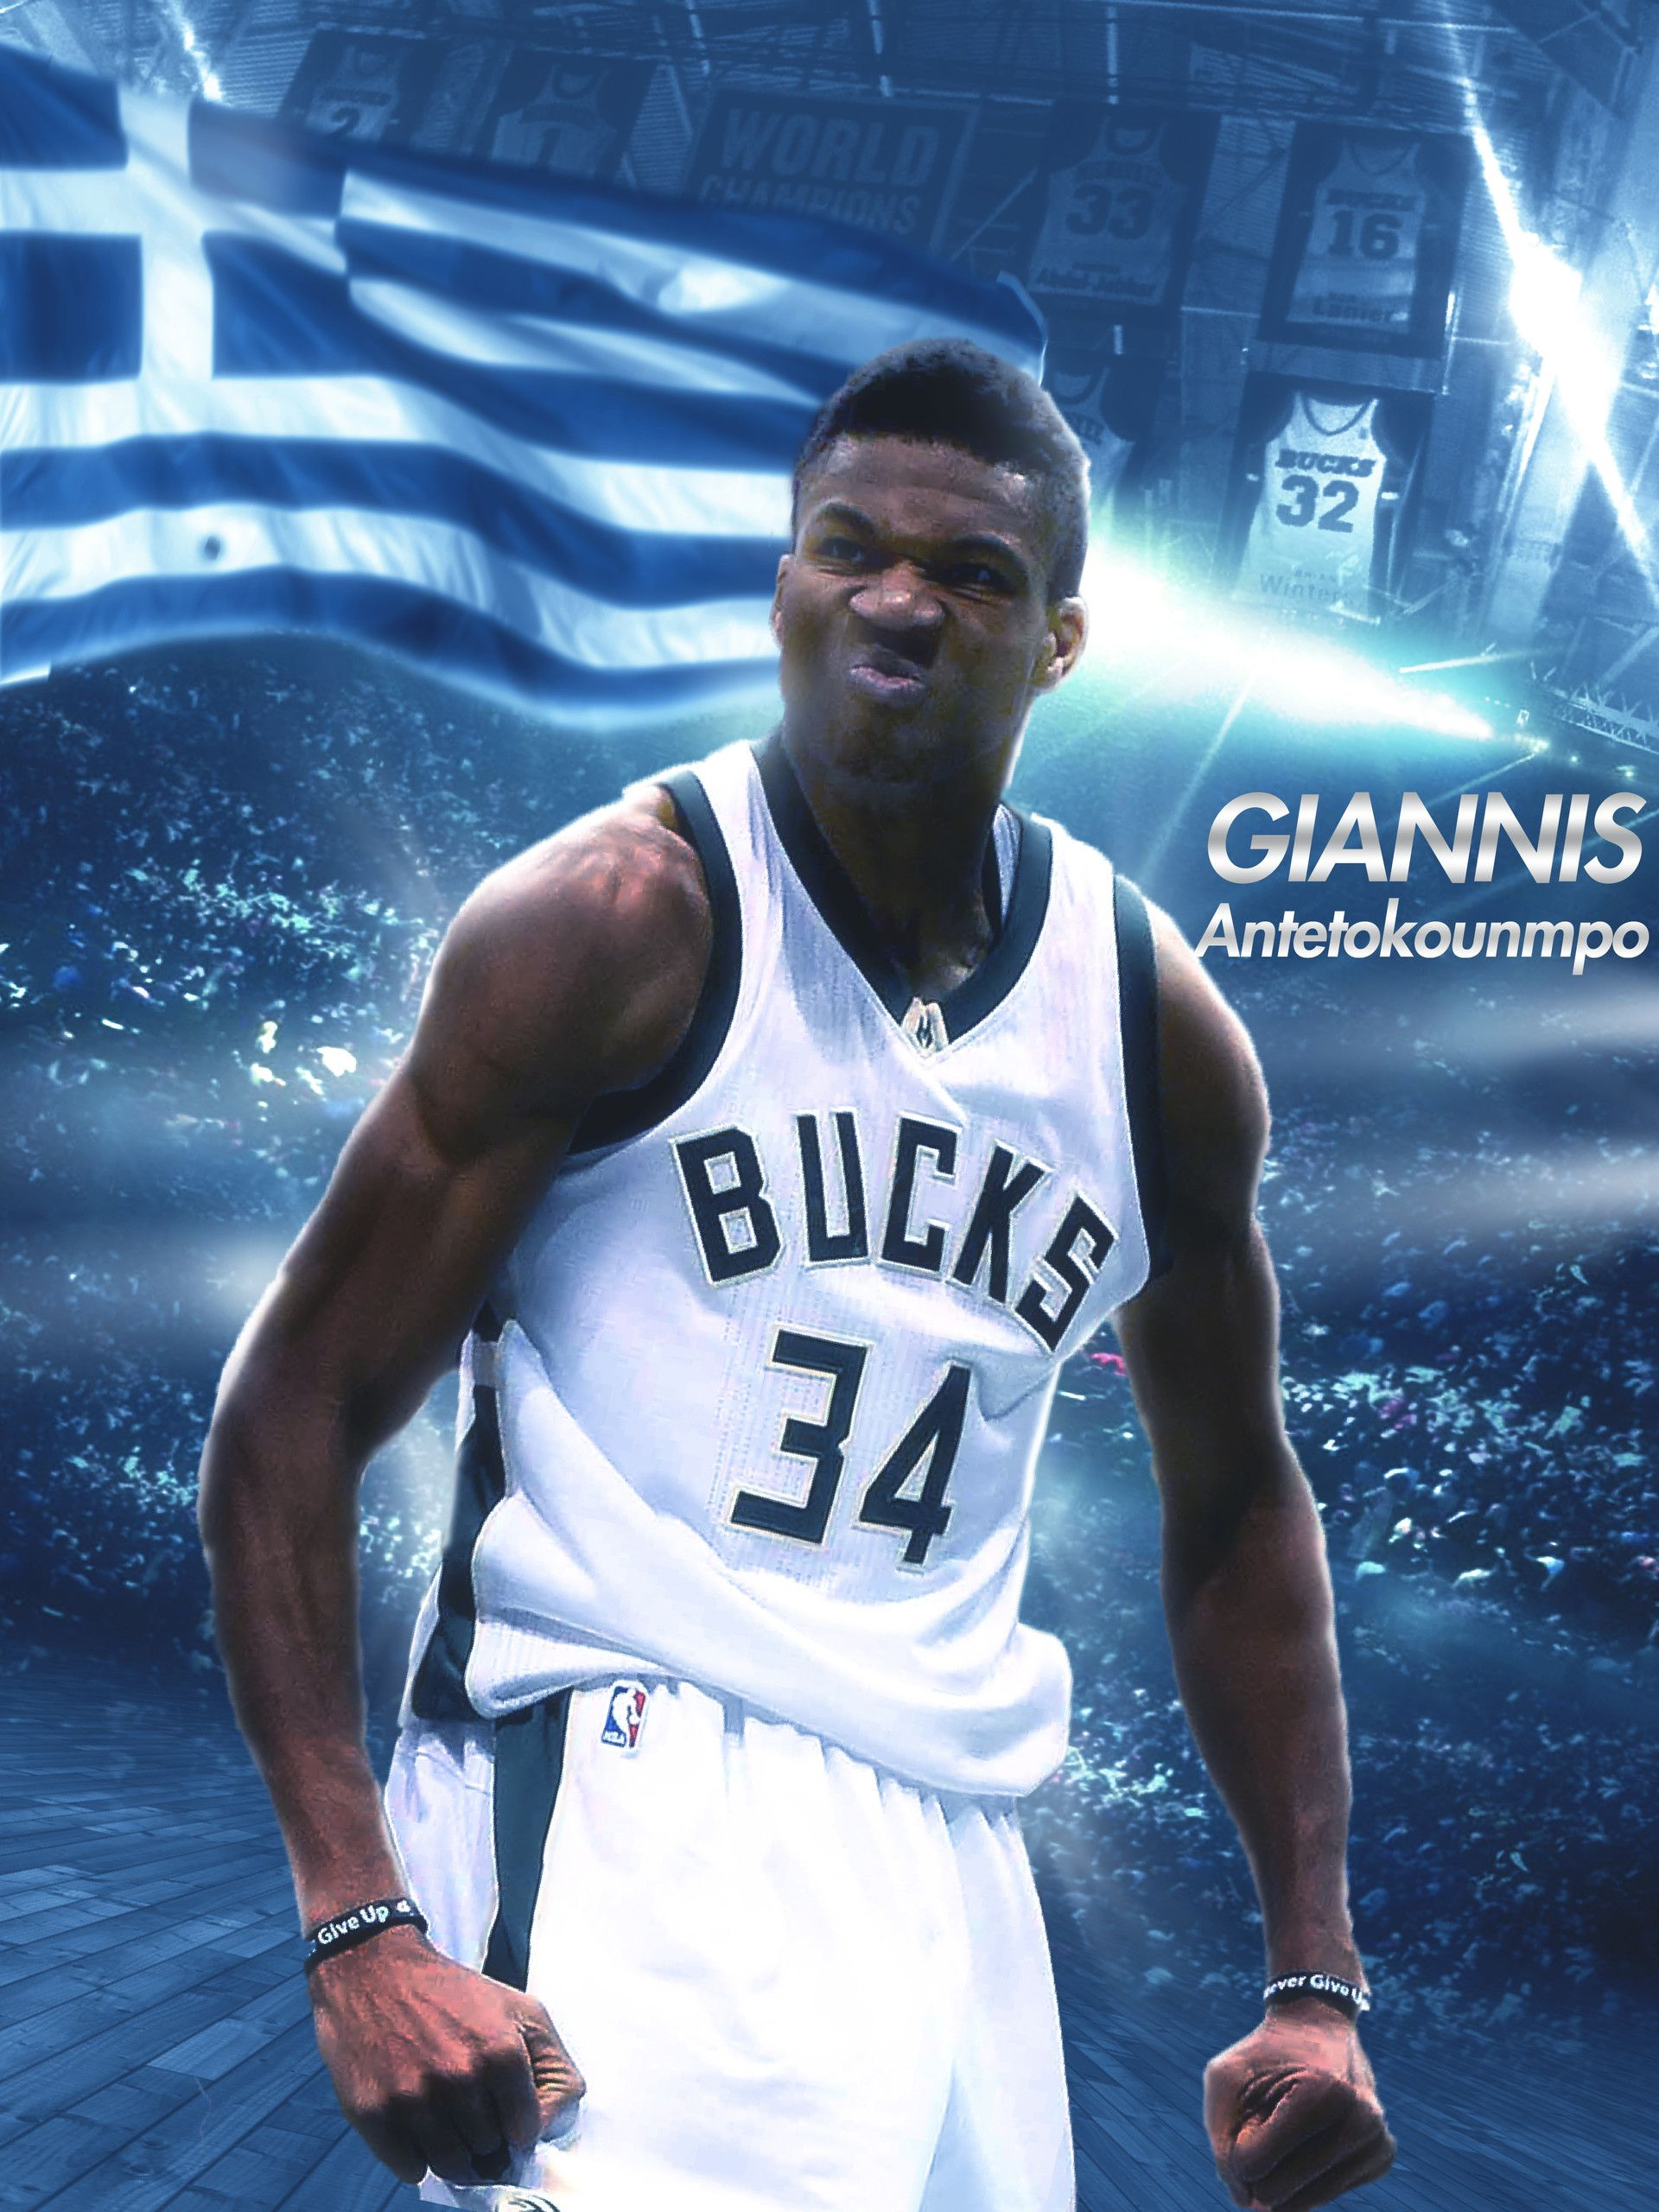 Giannis Antetokounmpo Gianni, Basketball uniforms design